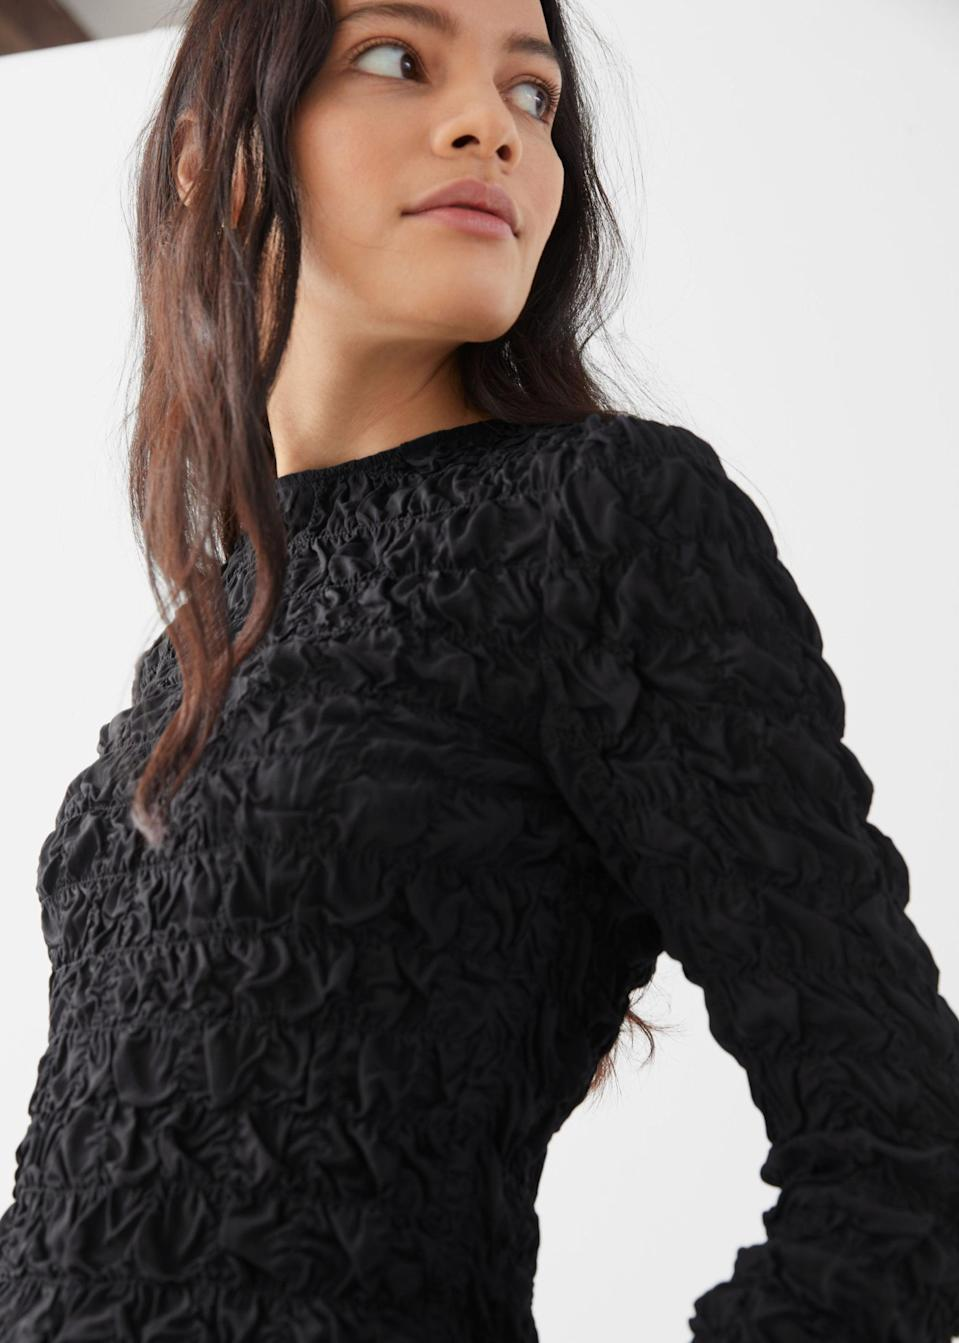 <p>This <span>&amp; Other Stories Smocked Round Collar Top</span> ($49, originally $99) is absolute steal!</p>